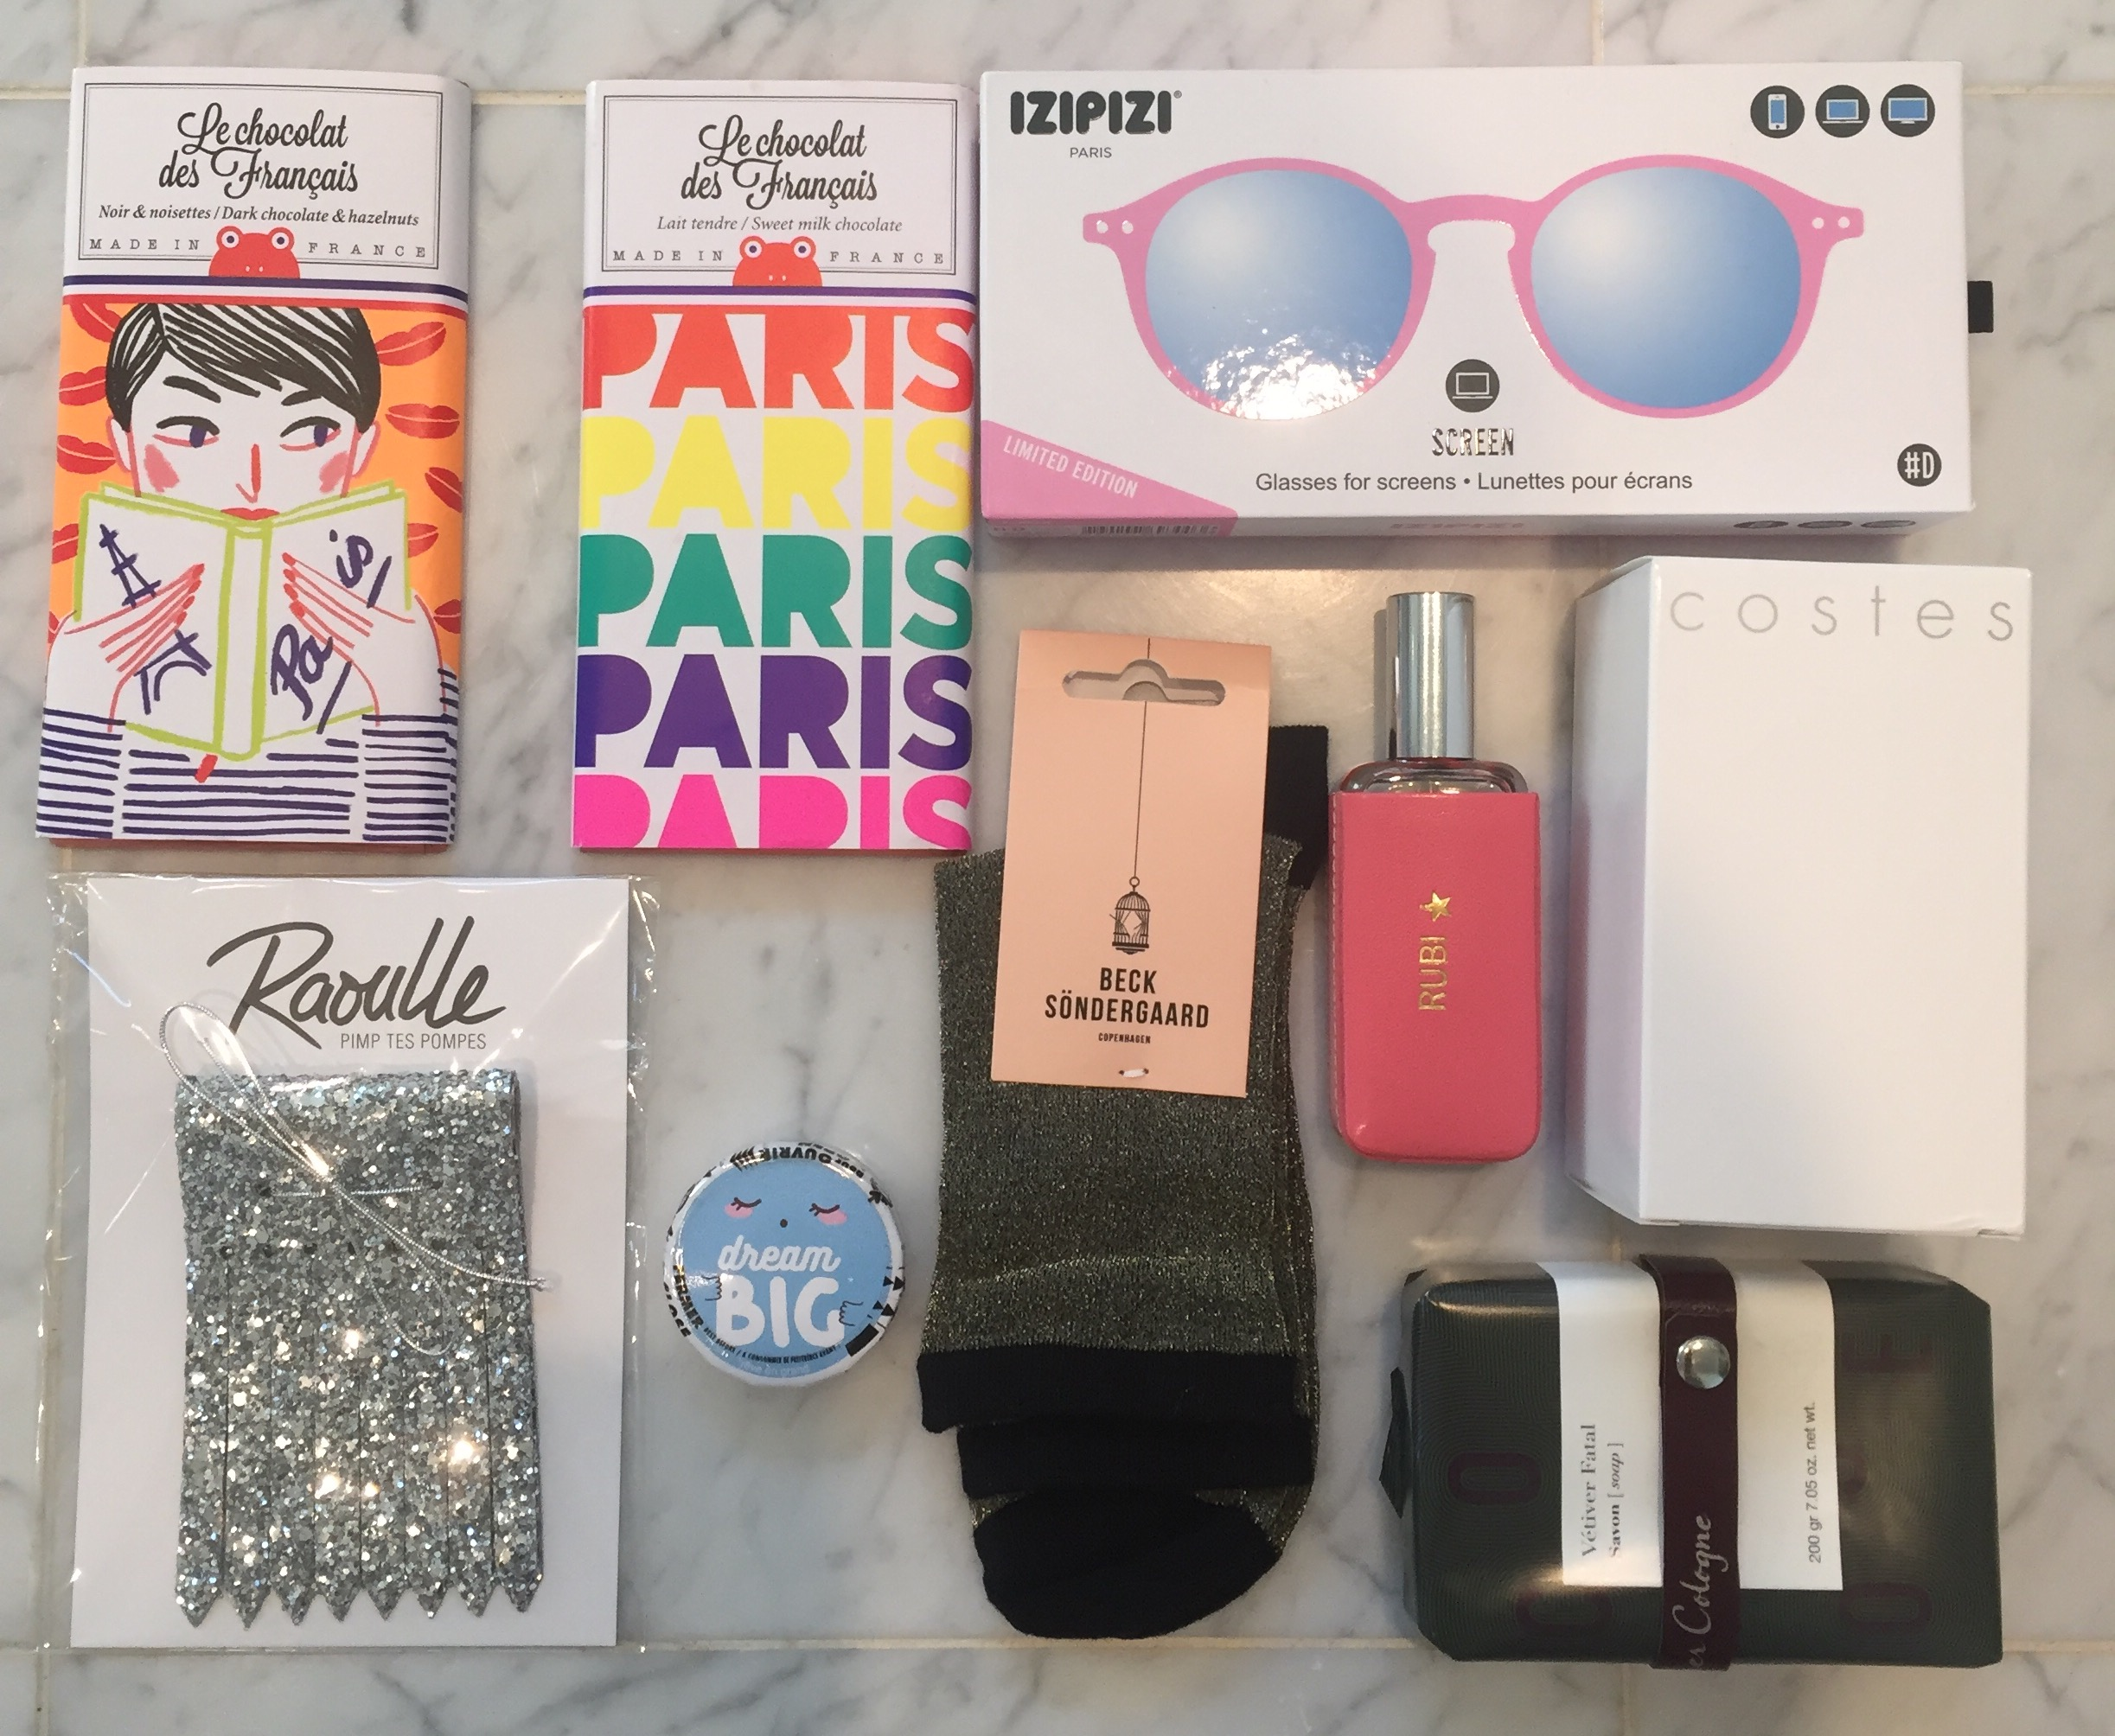 from RUBI -- Parisan chocolates from Colette, special lenses for 'screen' work (in pink of course!), sparkle tassels for her sneakers, sparkle socks (sparkle is a trend fashionlovers), personalized parfume with leather case and Hotel Costes room spray!